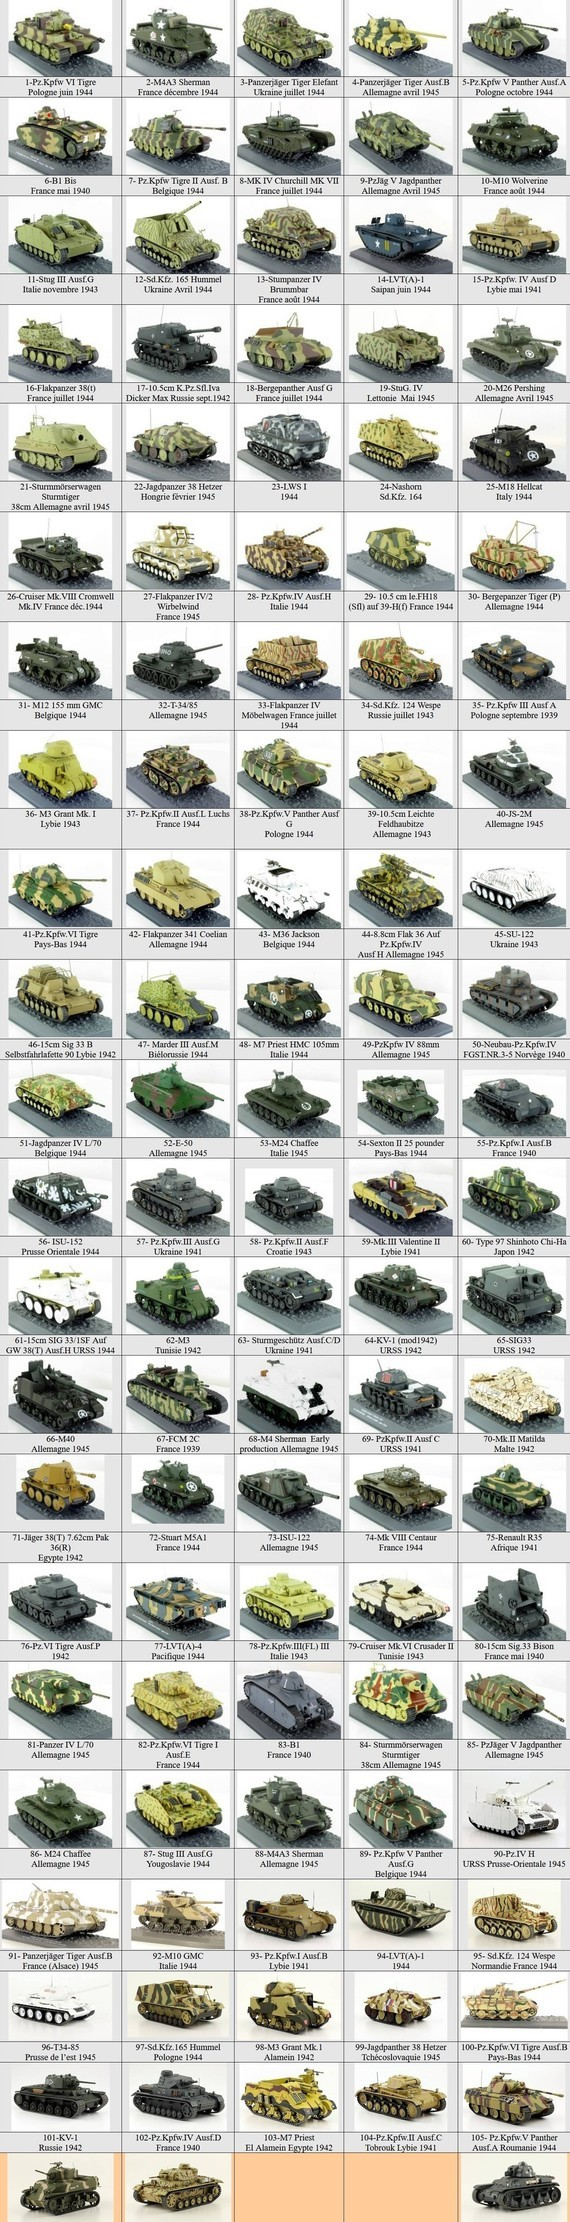 poster chars WWII au 1/43 N25